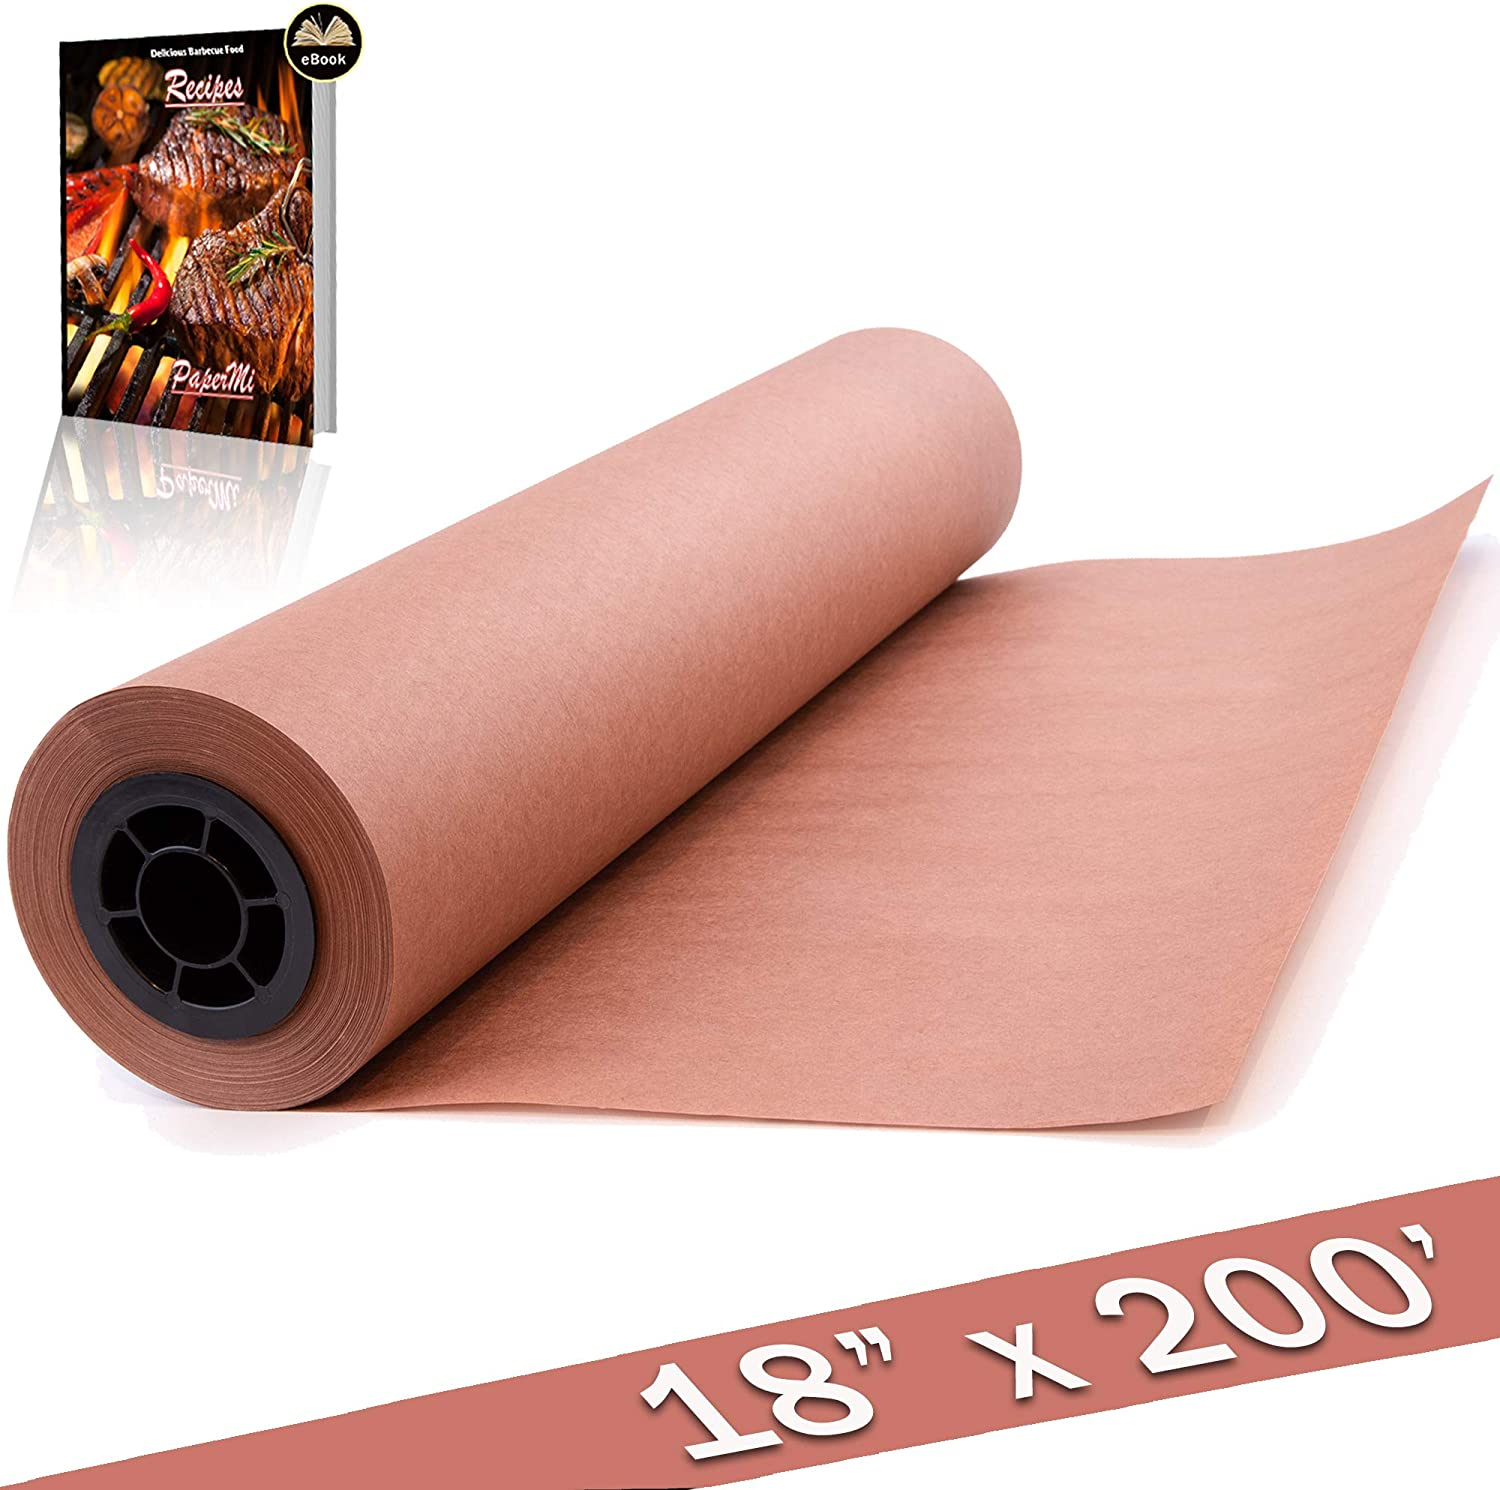 "Kraft Pink Butcher Paper Roll - 18"" x 200' (2400"") All Natural, USA Made Peach Wrapping Paper for Beef Briskets, BBQ Meat Smoking - FDA Approved Food Grade, Unbleached, Unwaxed, Uncoated Sheet"